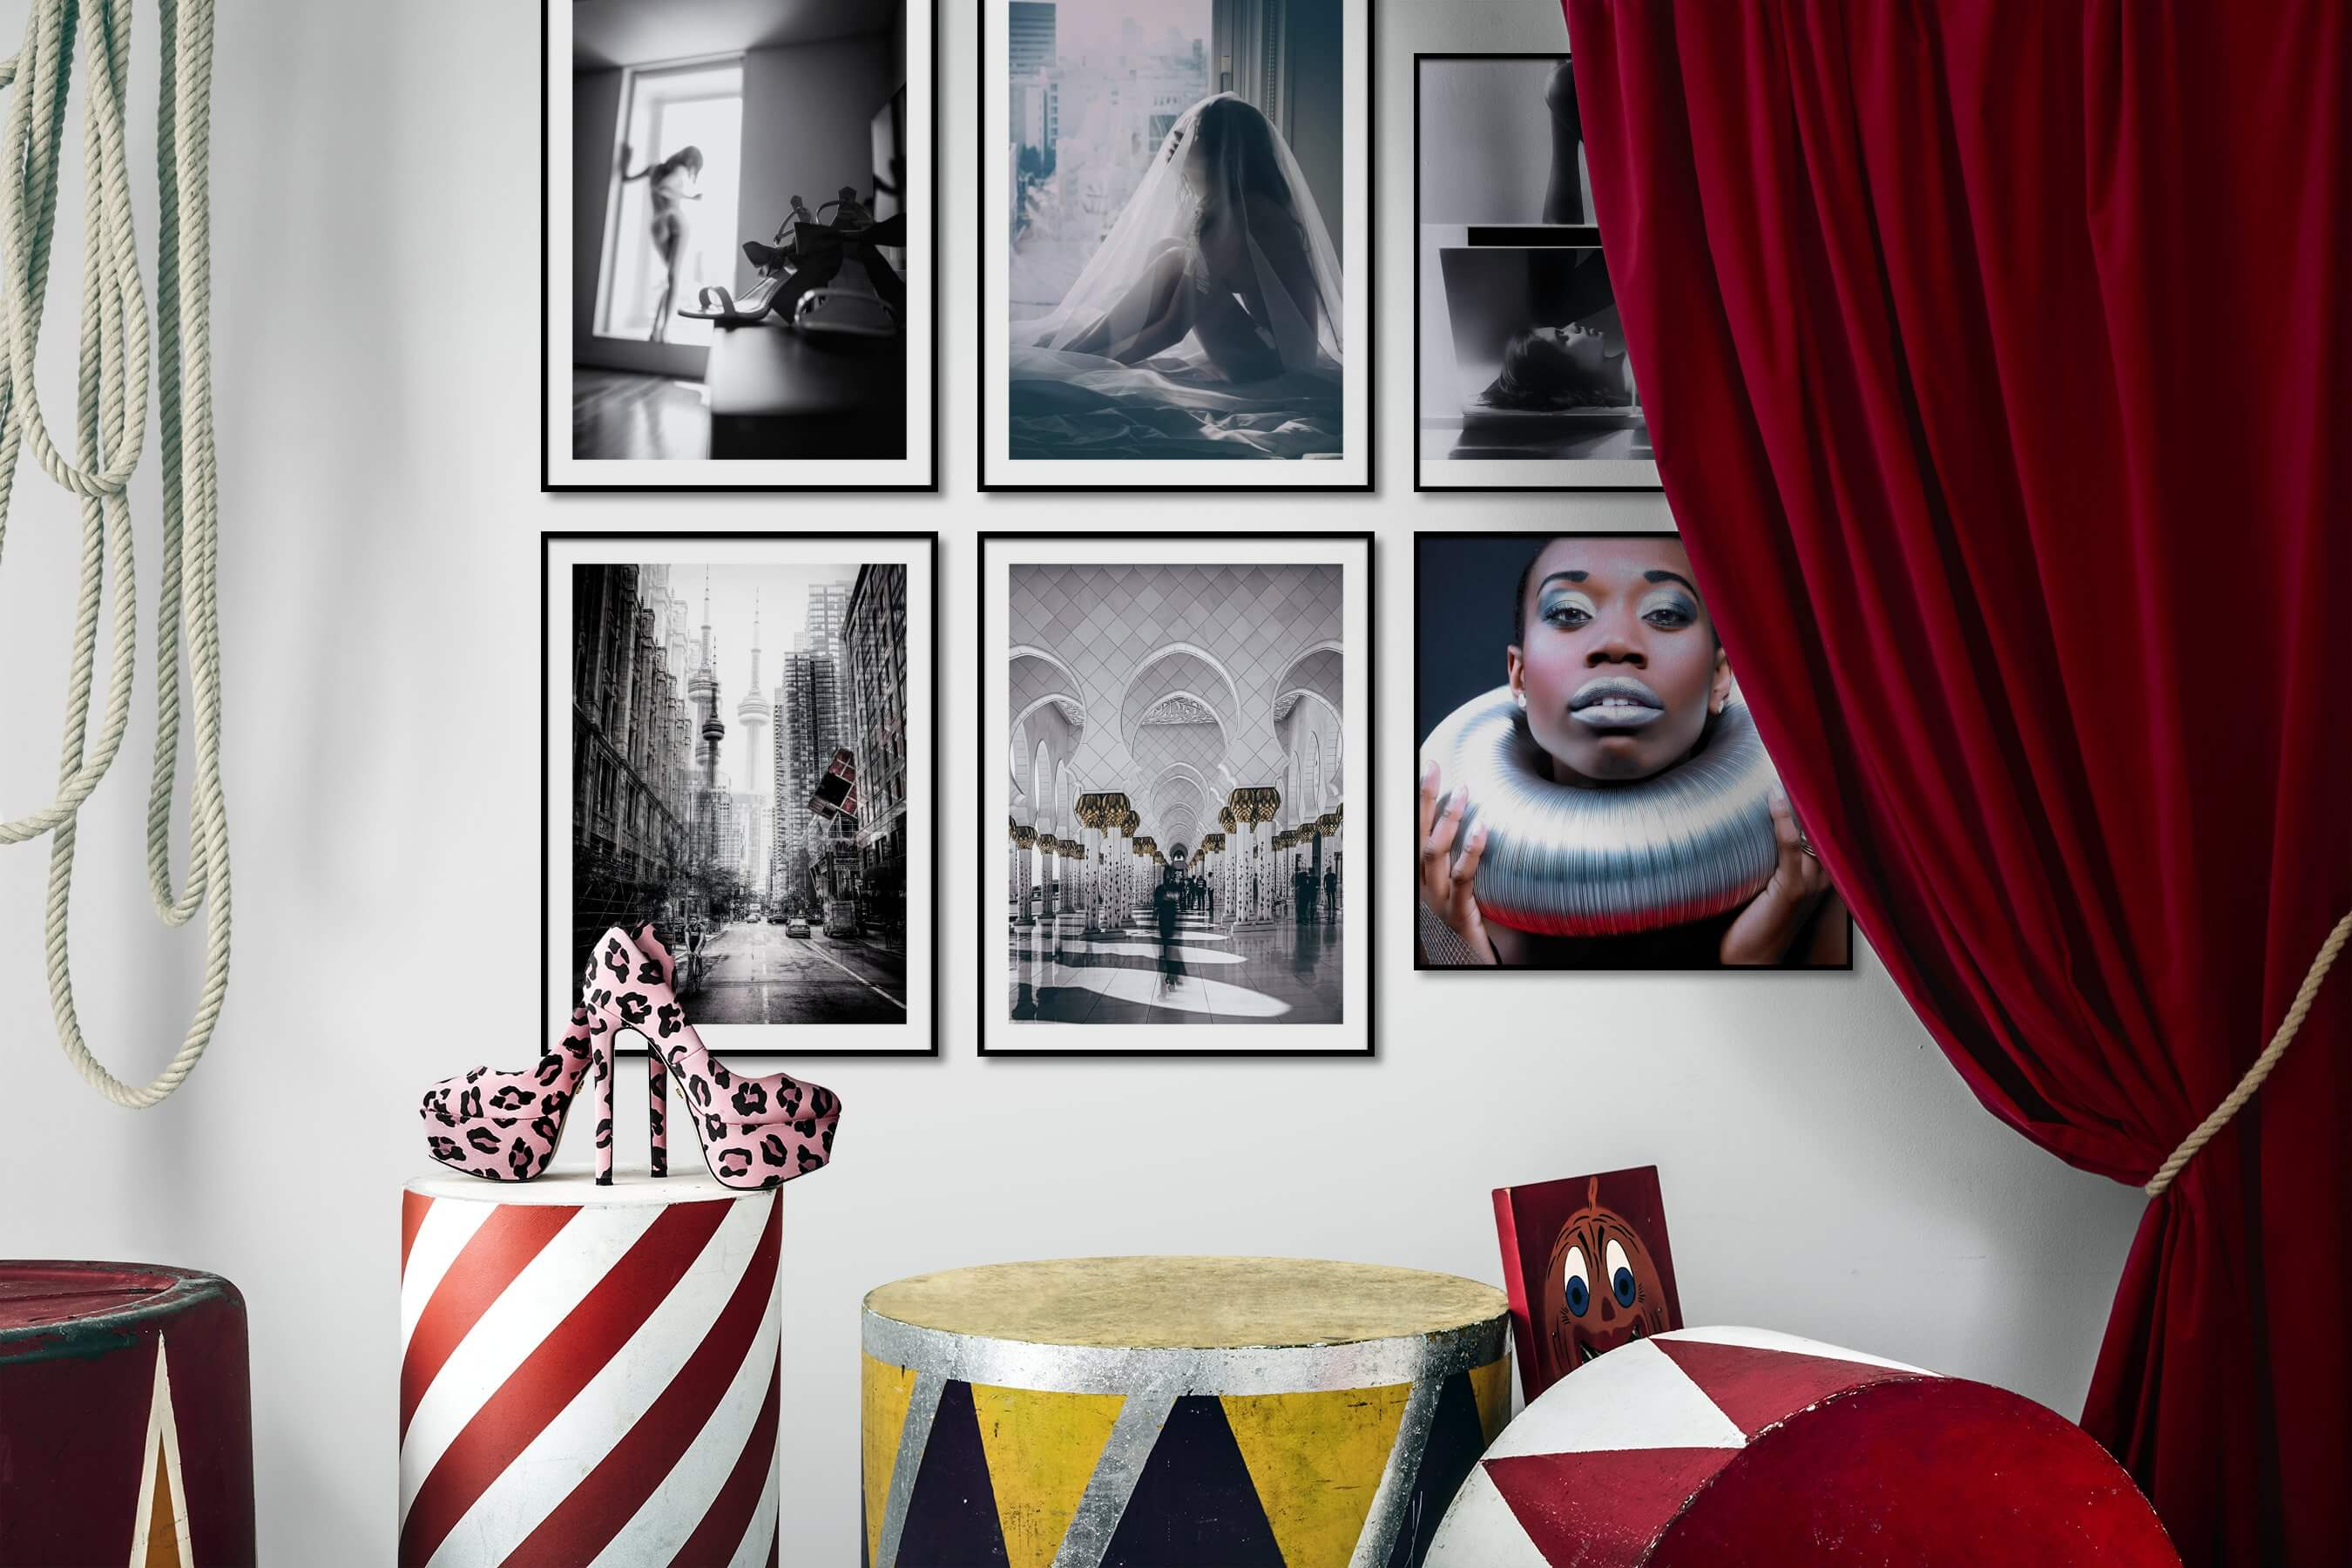 Gallery wall idea with six framed pictures arranged on a wall depicting Fashion & Beauty, Black & White, Artsy, City Life, and For the Maximalist